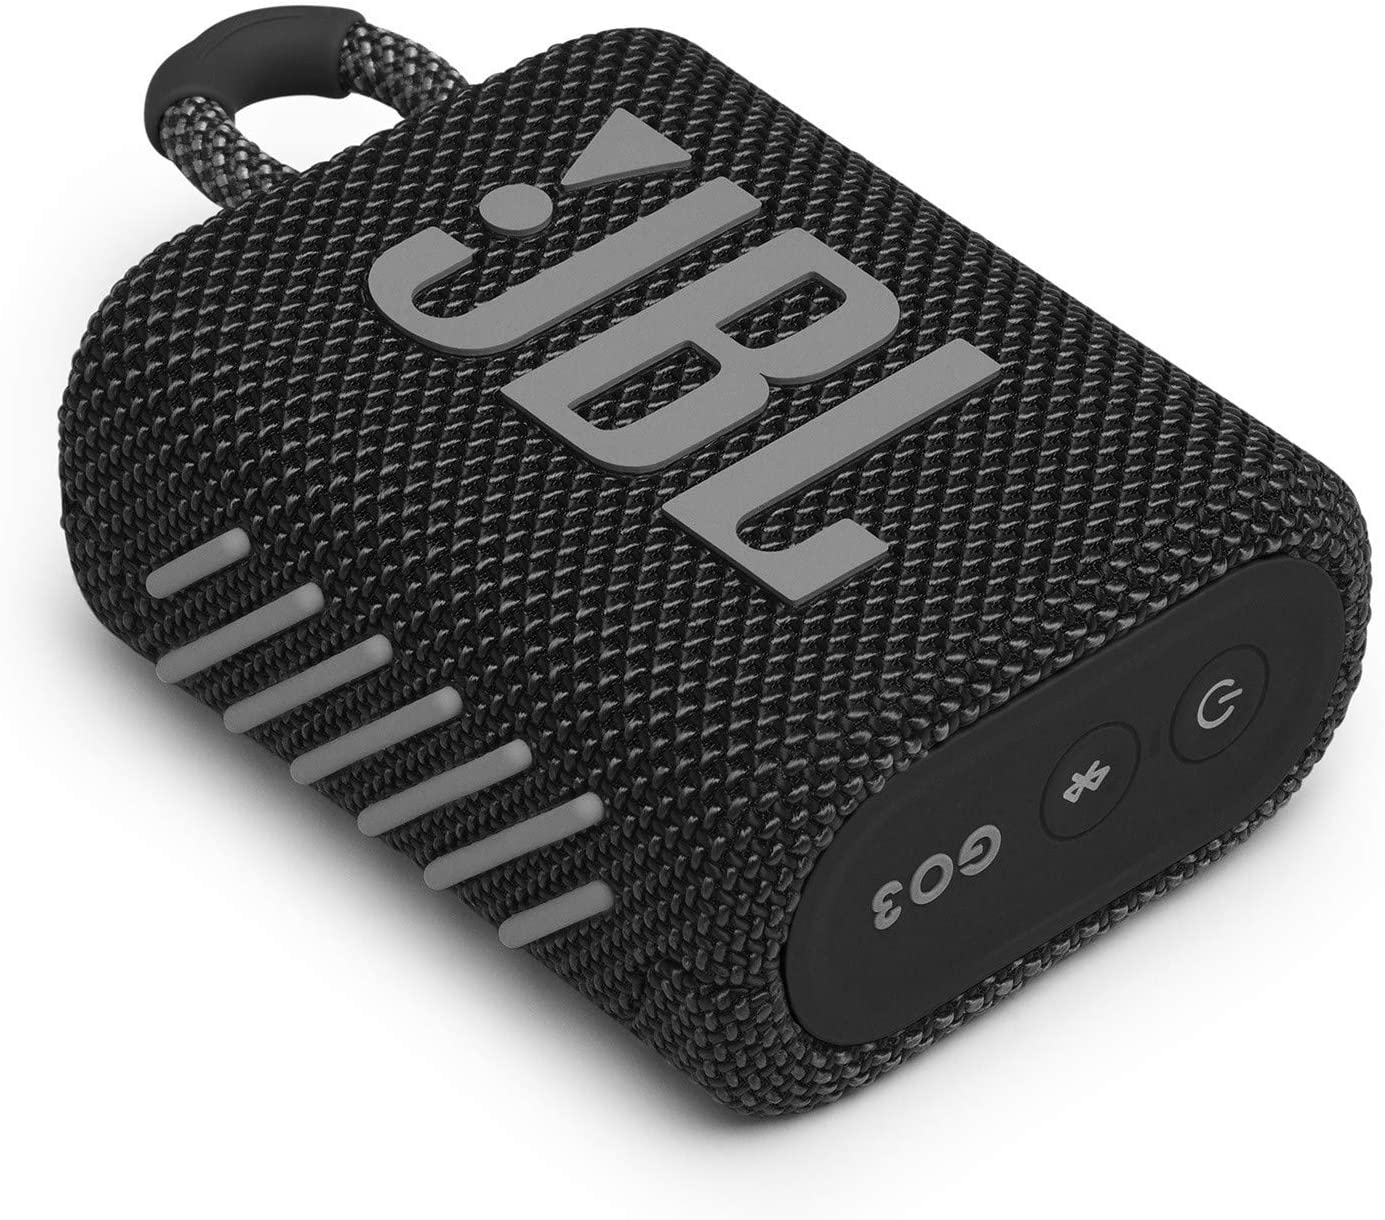 Black JBL Go 3: Portable Speaker with Bluetooth Waterproof and Dustproof Feature Built-in Battery